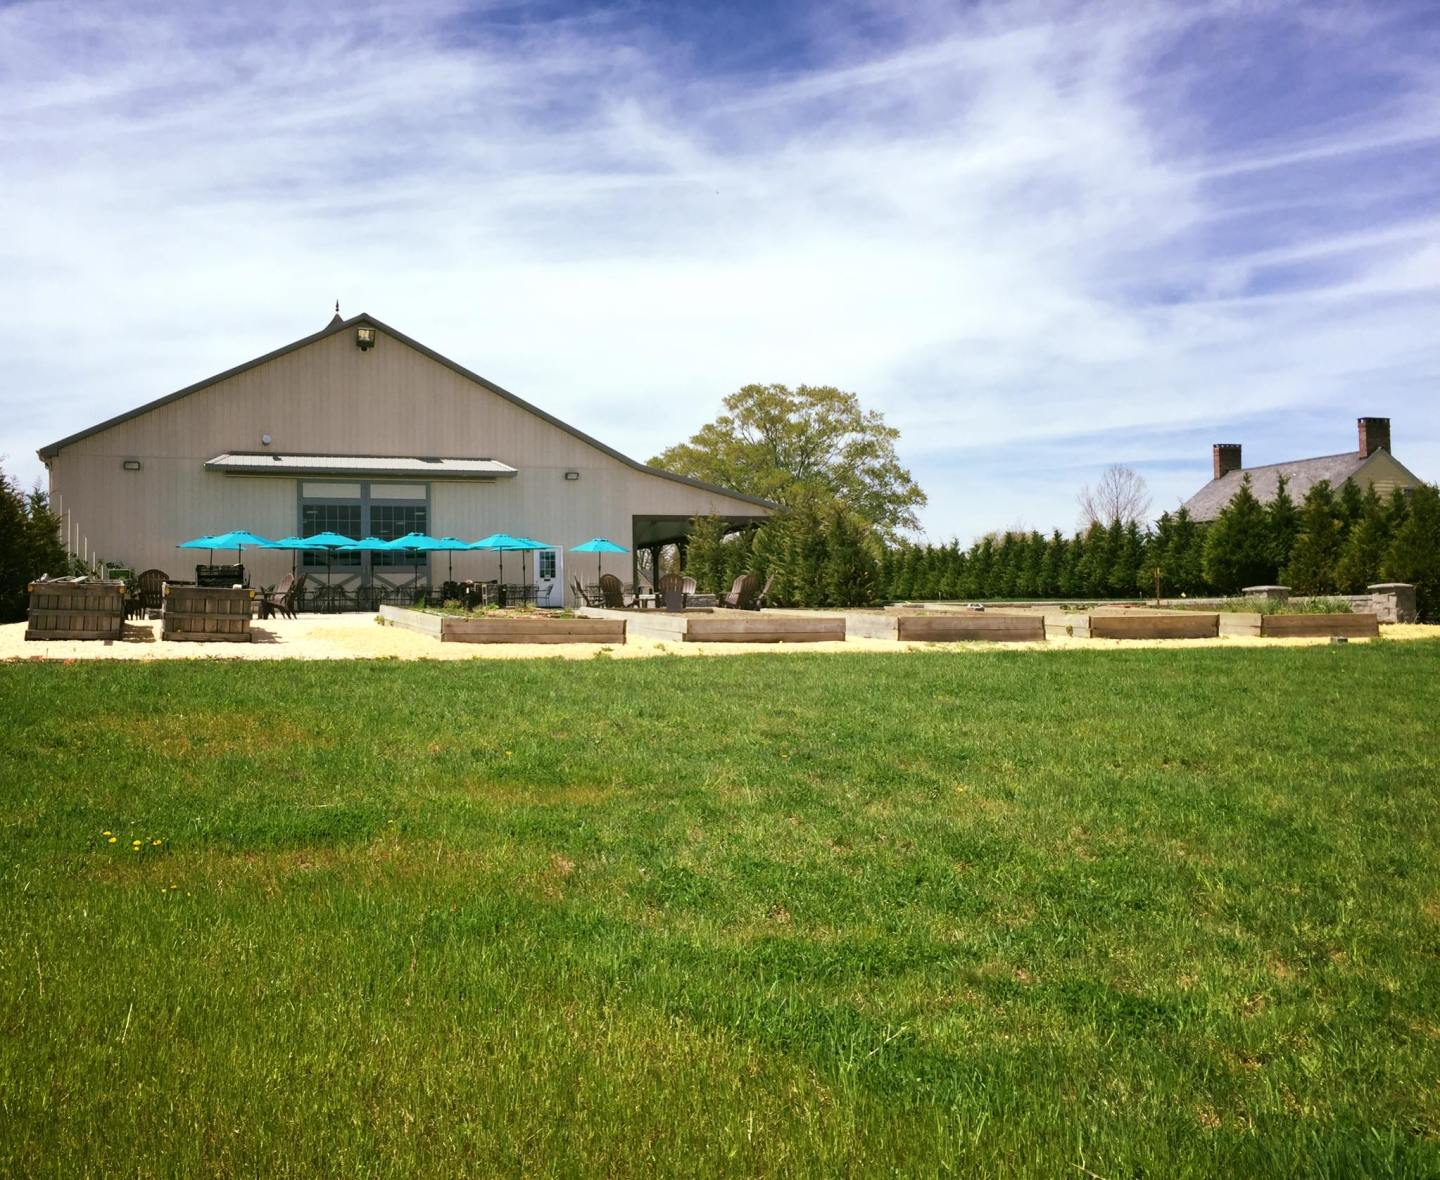 Fox Hollow Holmdel Wines Review